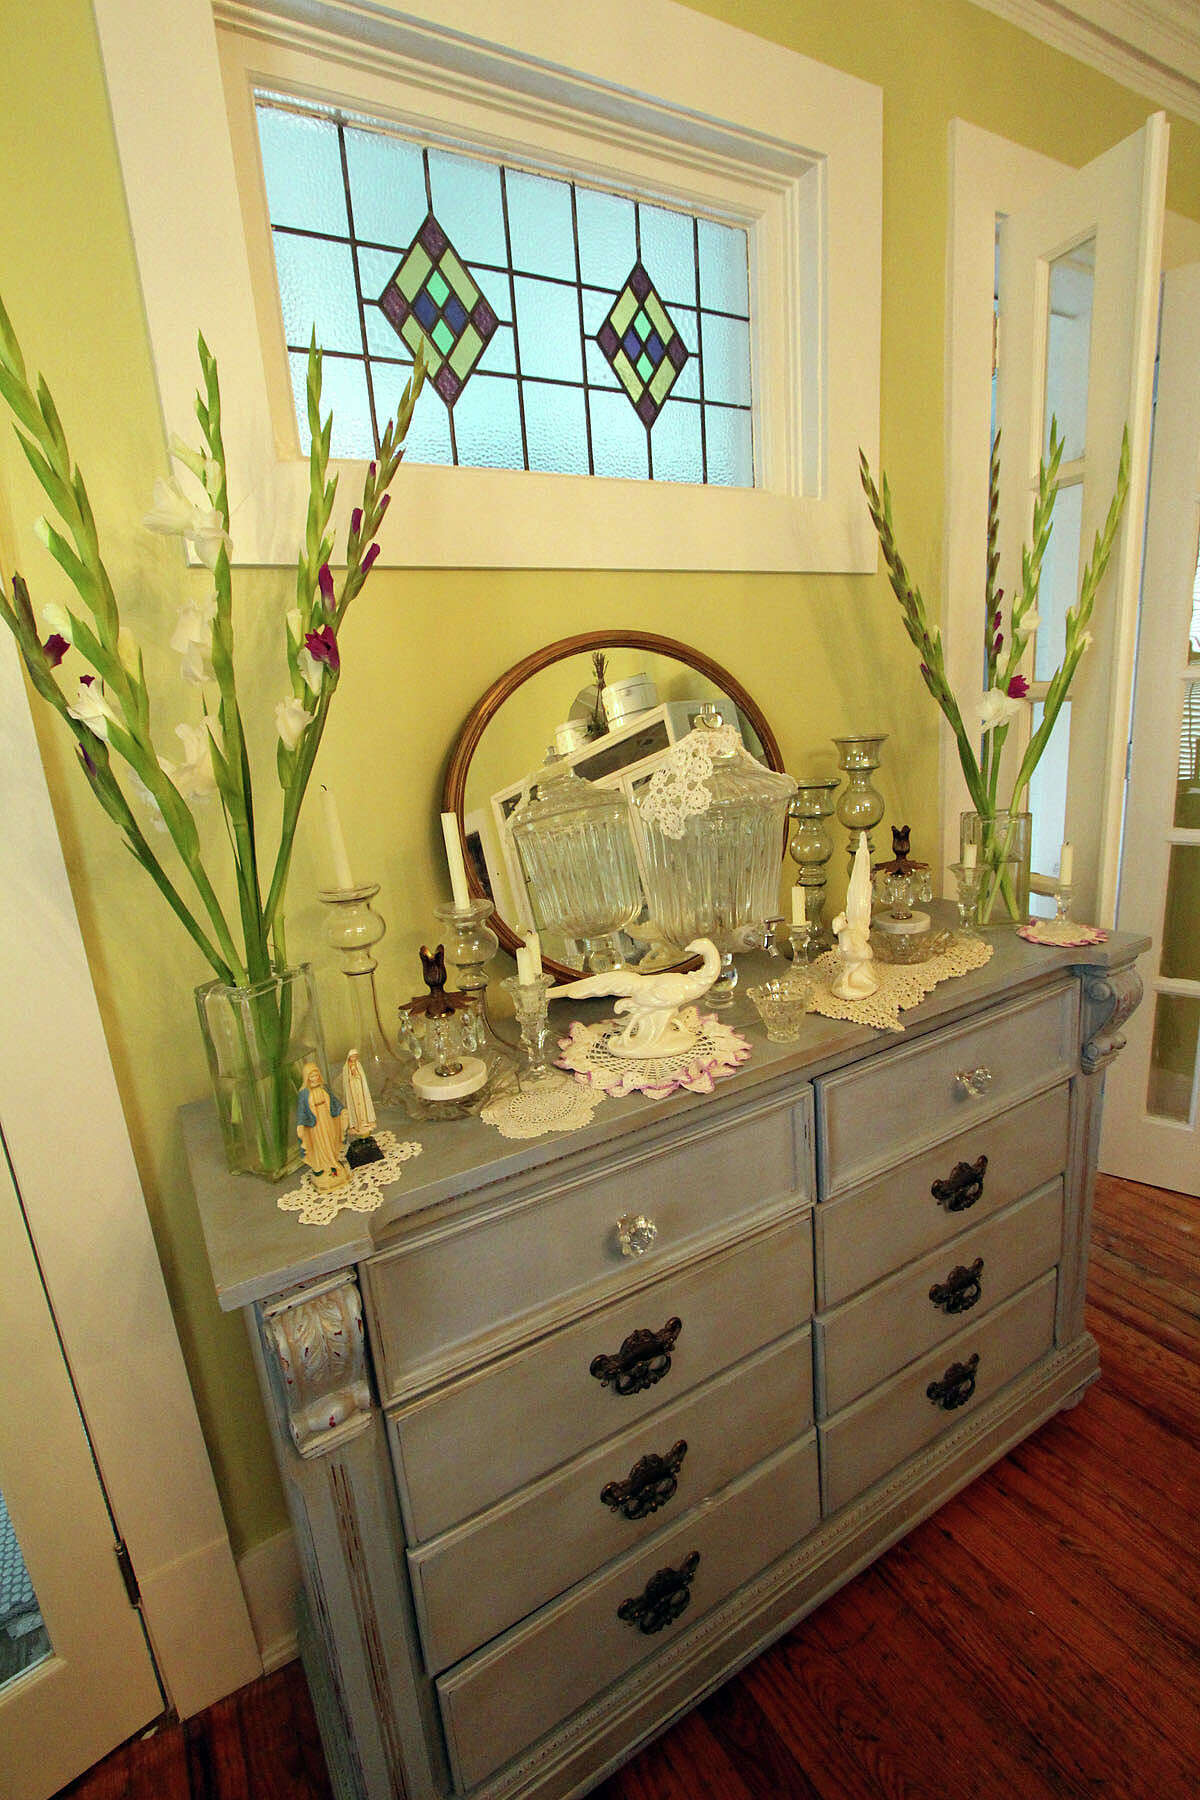 A dresser-turned-buffet, painted antique blue, sits below an original stained glass window in the dining room of the 1910 Monte Vista house Jennifer Gonzalez and Frank Garcia bought in a foreclosure sale.